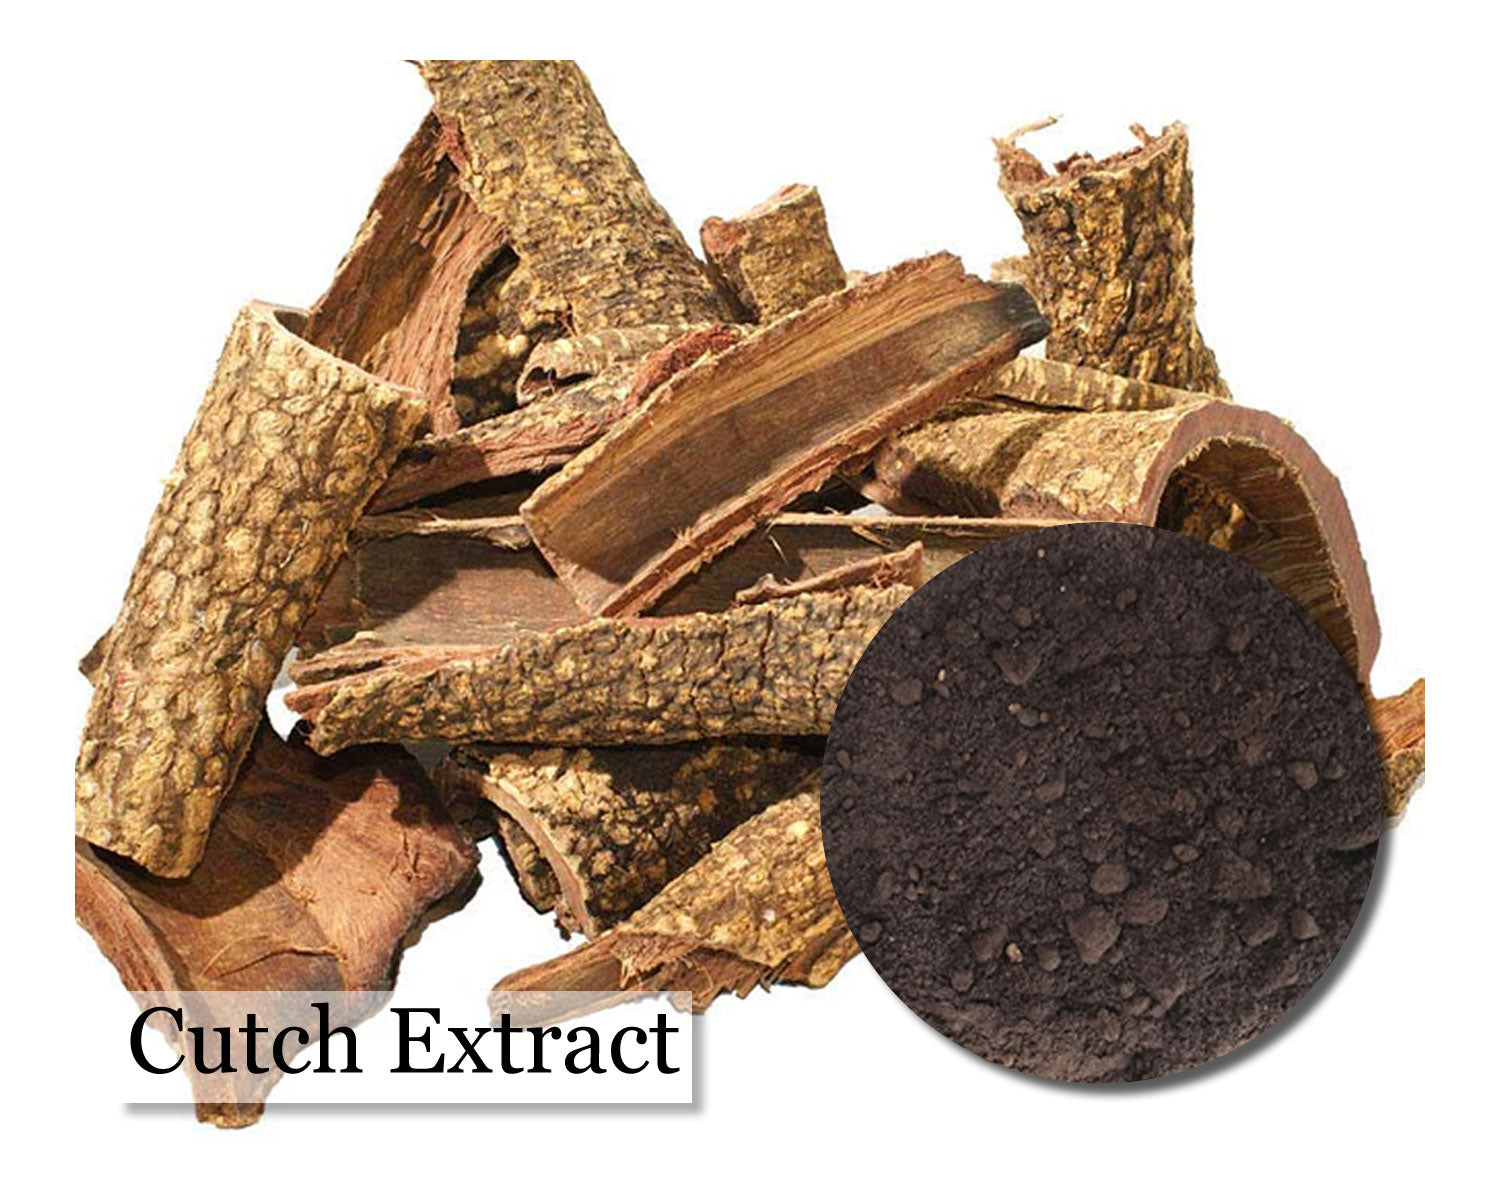 Cutch Extract 8 oz